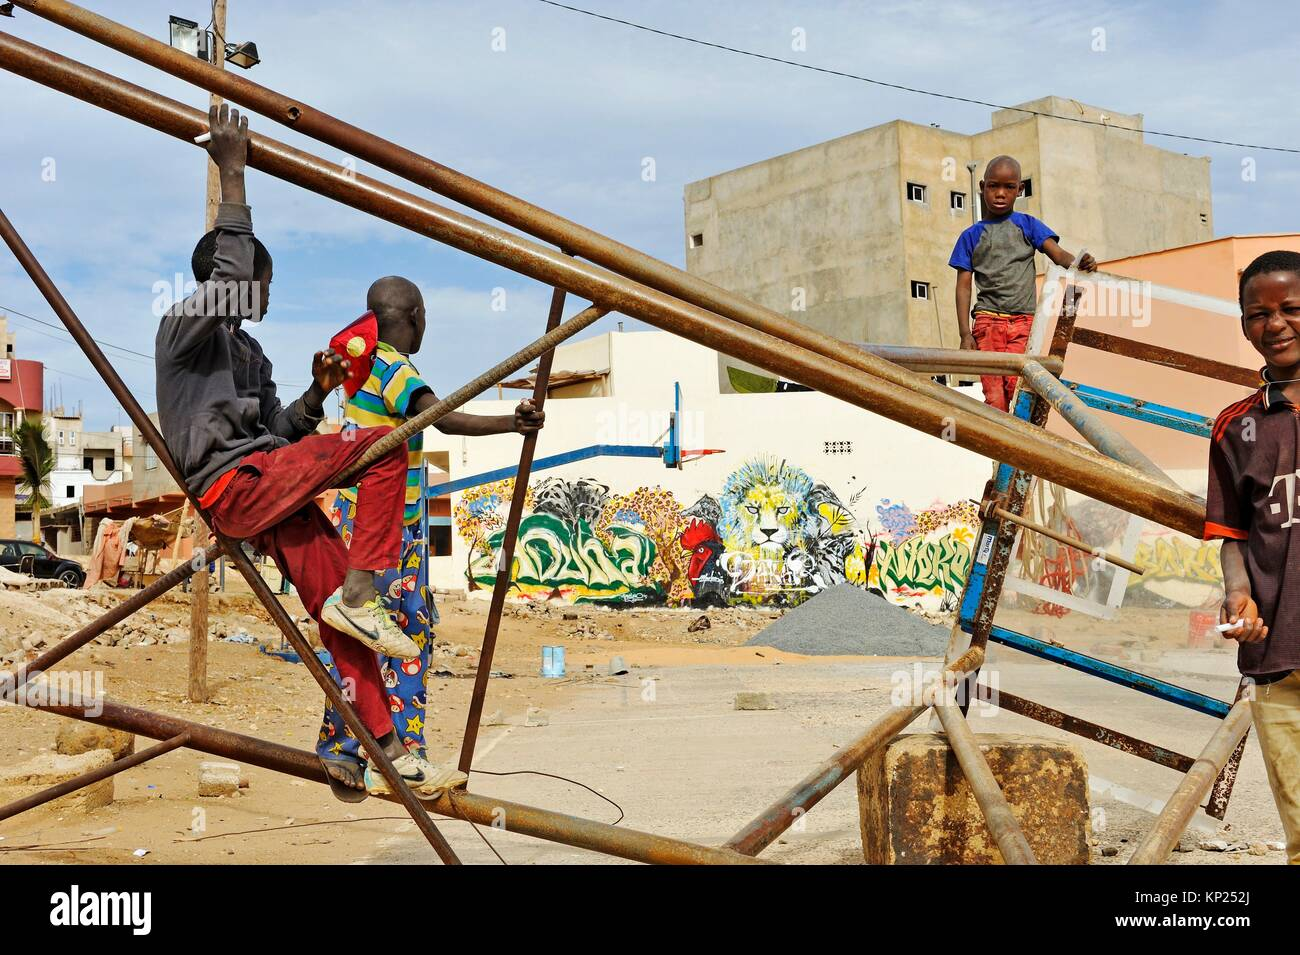 preteens playing in a vacant lot of Ouakam district, Dakar, Senegal, West Africa. - Stock Image